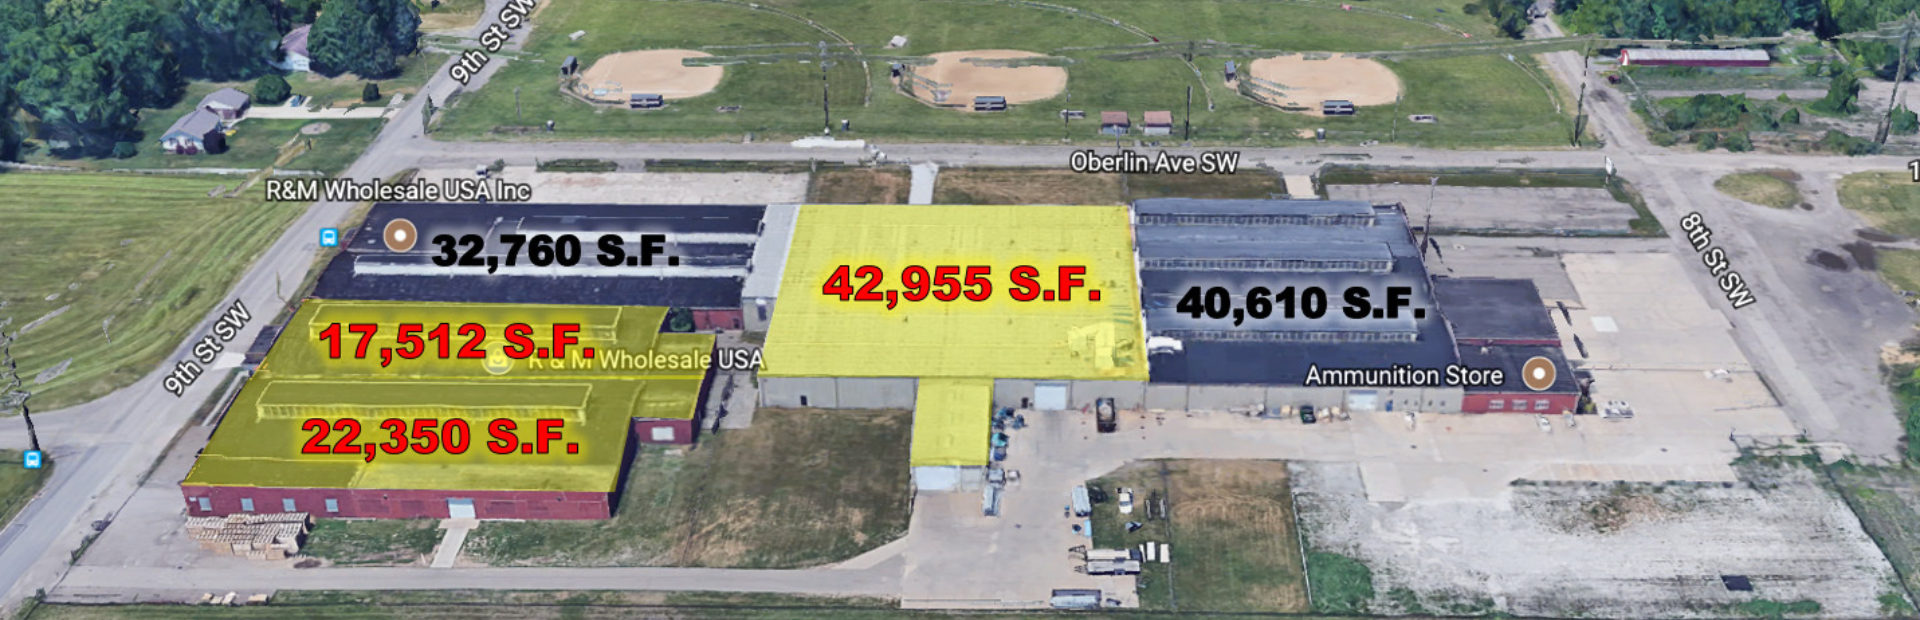 17,512 SQ.FT. UP TO 82,817 SQ.FT. INDUSTRIAL SPACE FOR LEASE